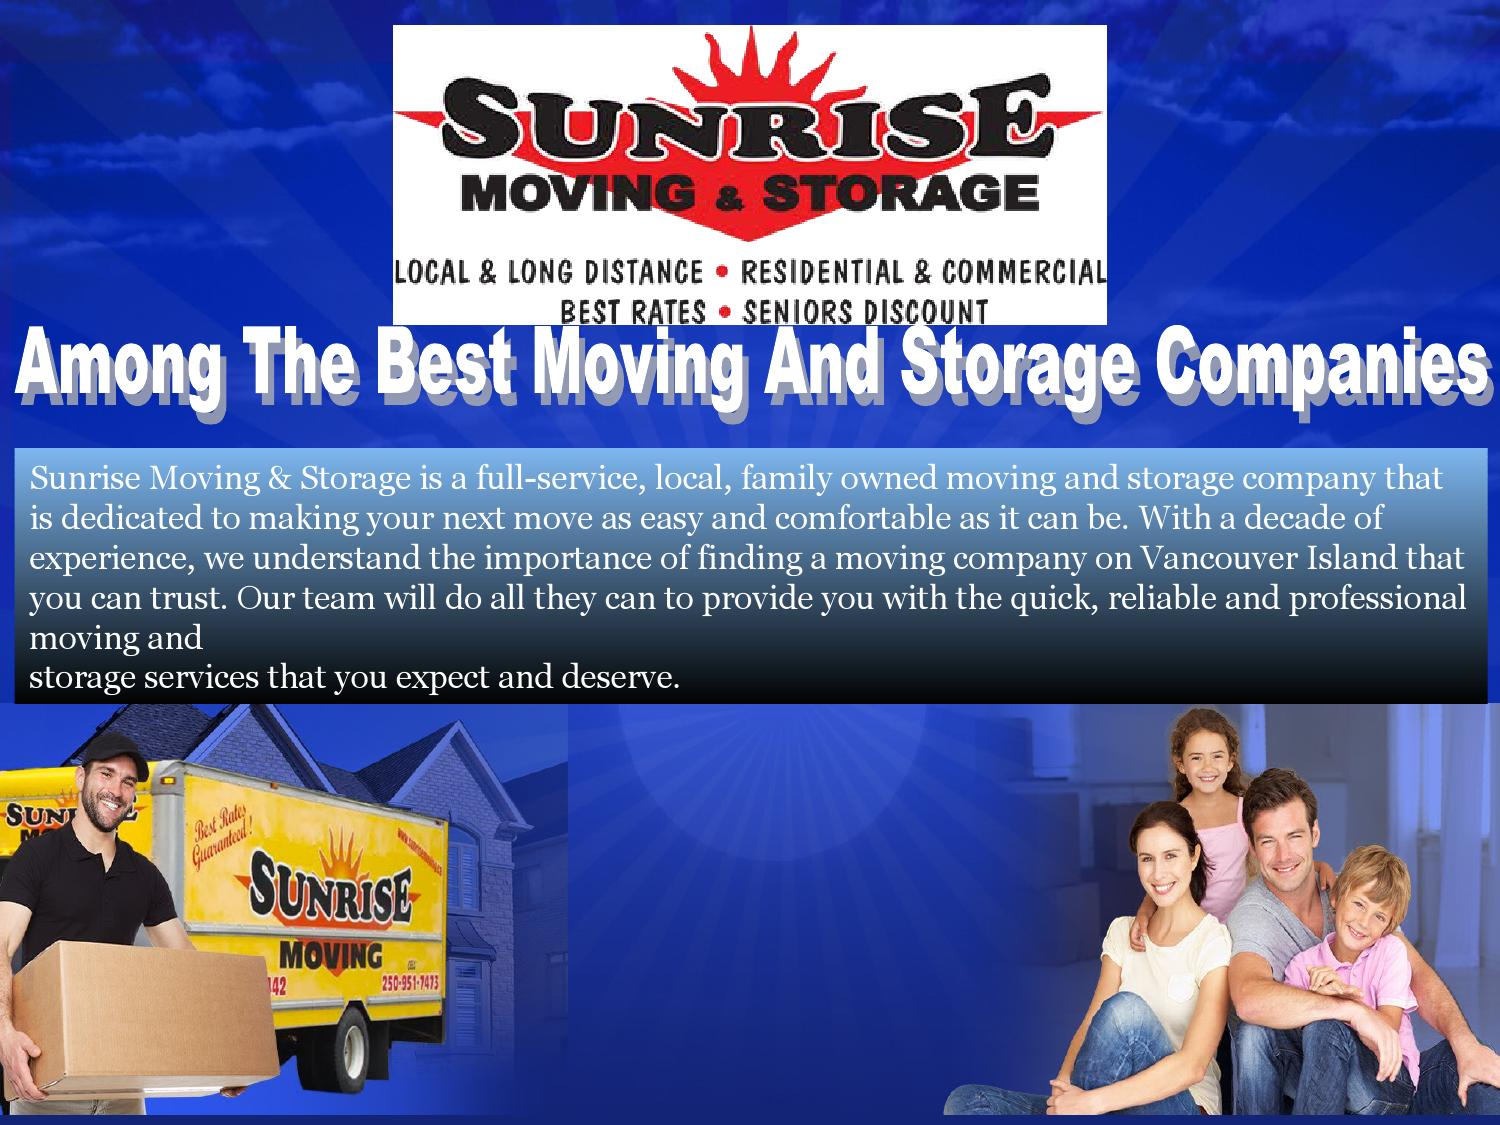 Moving And Storage Companies >> Among The Best Moving And Storage Companies By Sunrisemoving